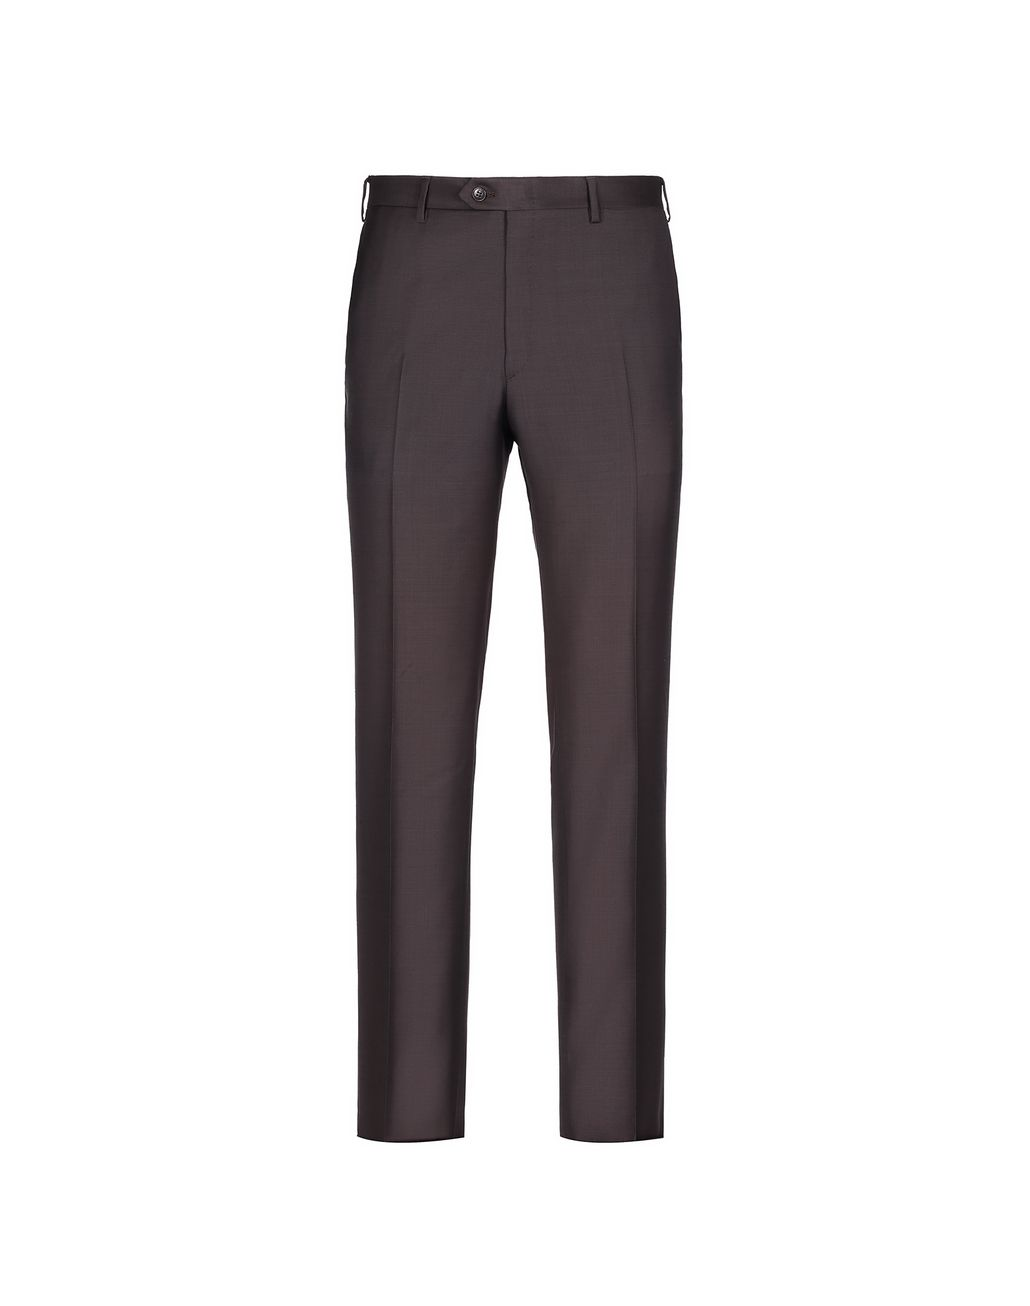 BRIONI Brown Tigullio Trousers Trousers Man f